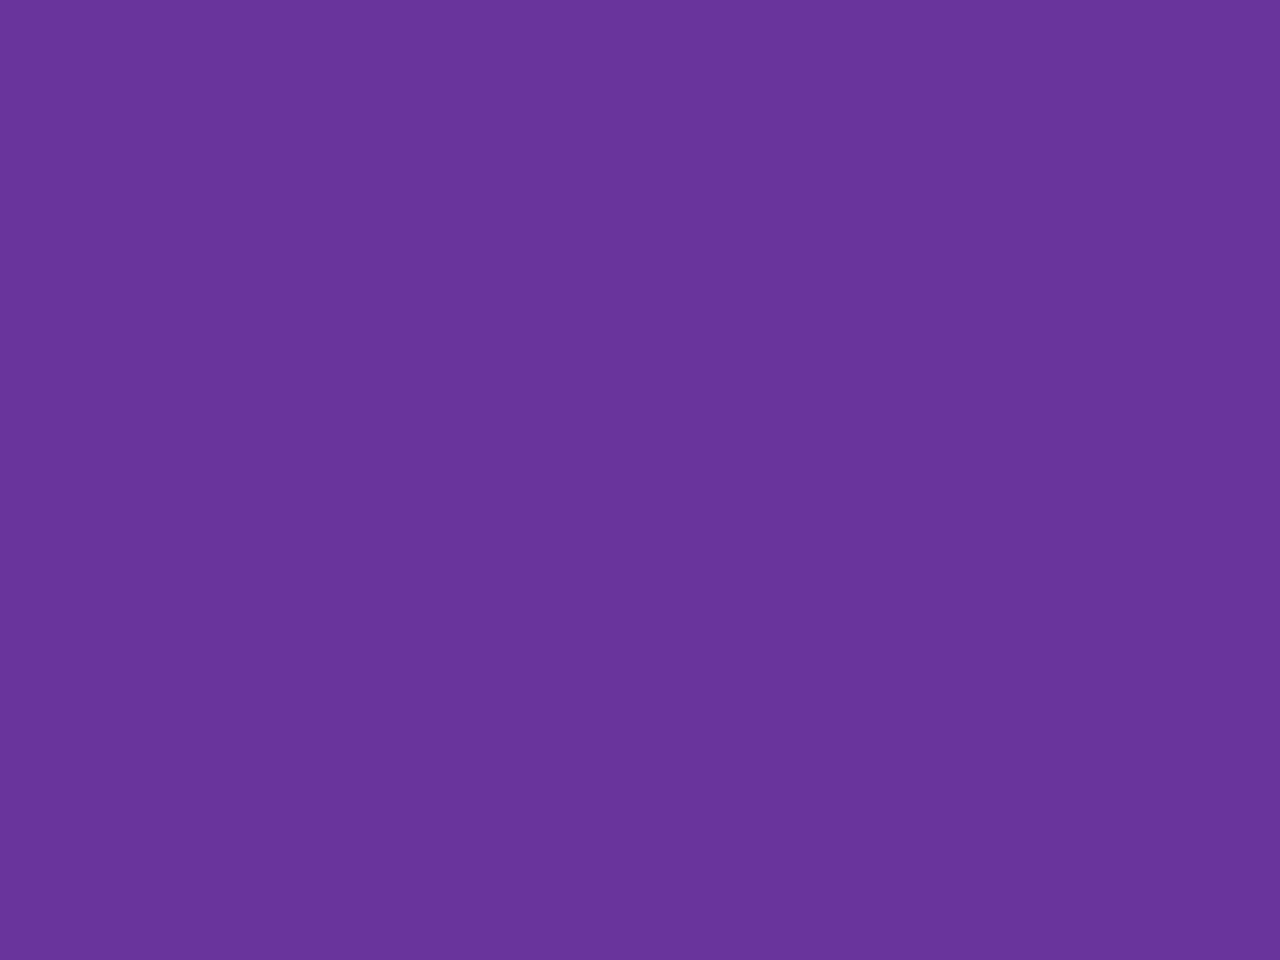 1280x960 Purple Heart Solid Color Background